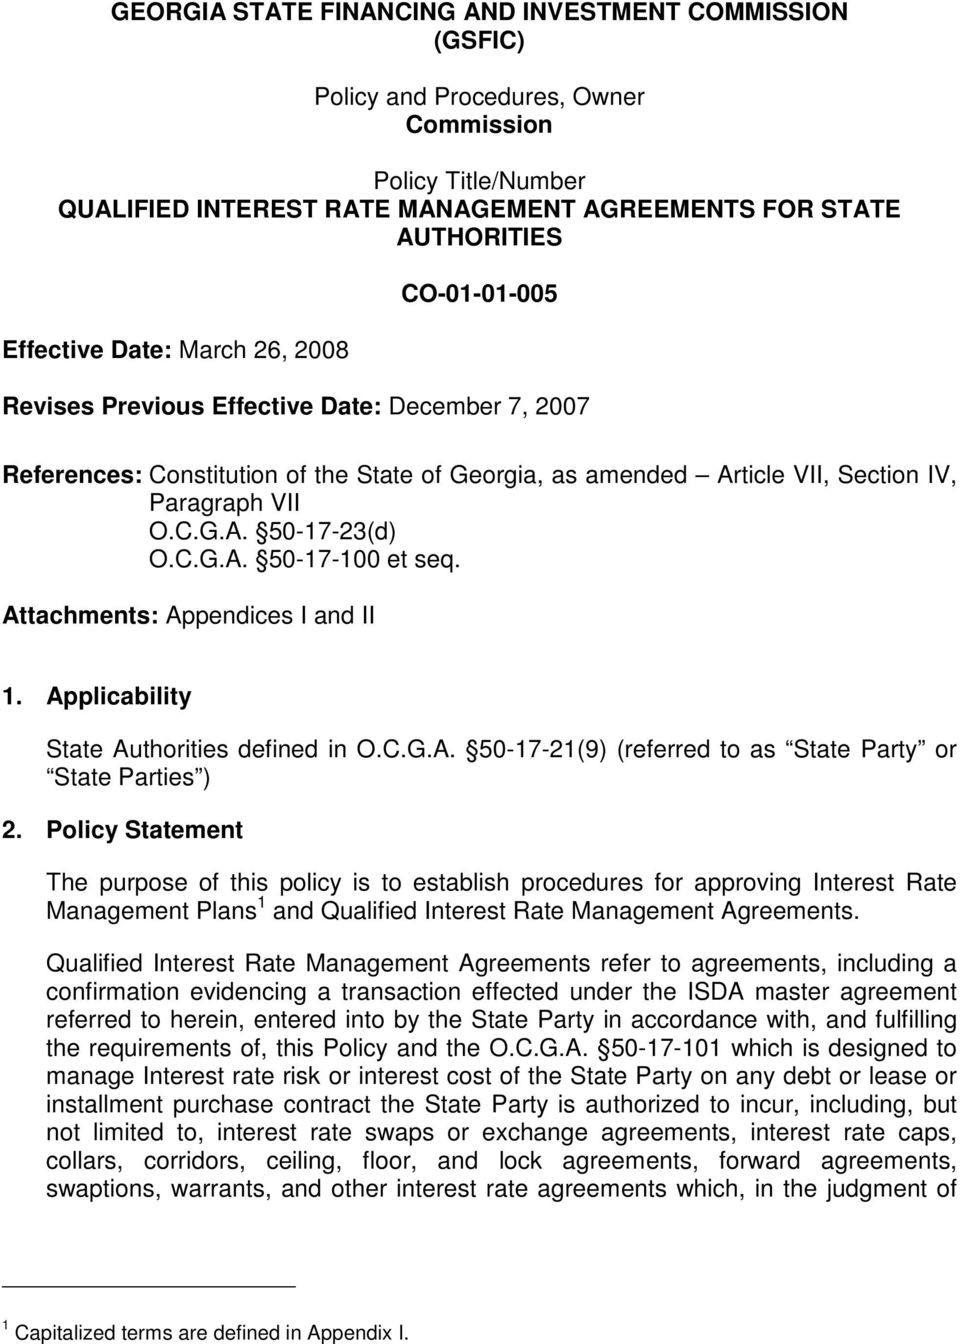 C.G.A. 50-17-100 et seq. Attachments: Appendices I and II 1. Applicability State Authorities defined in O.C.G.A. 50-17-21(9) (referred to as State Party or State Parties ) 2.